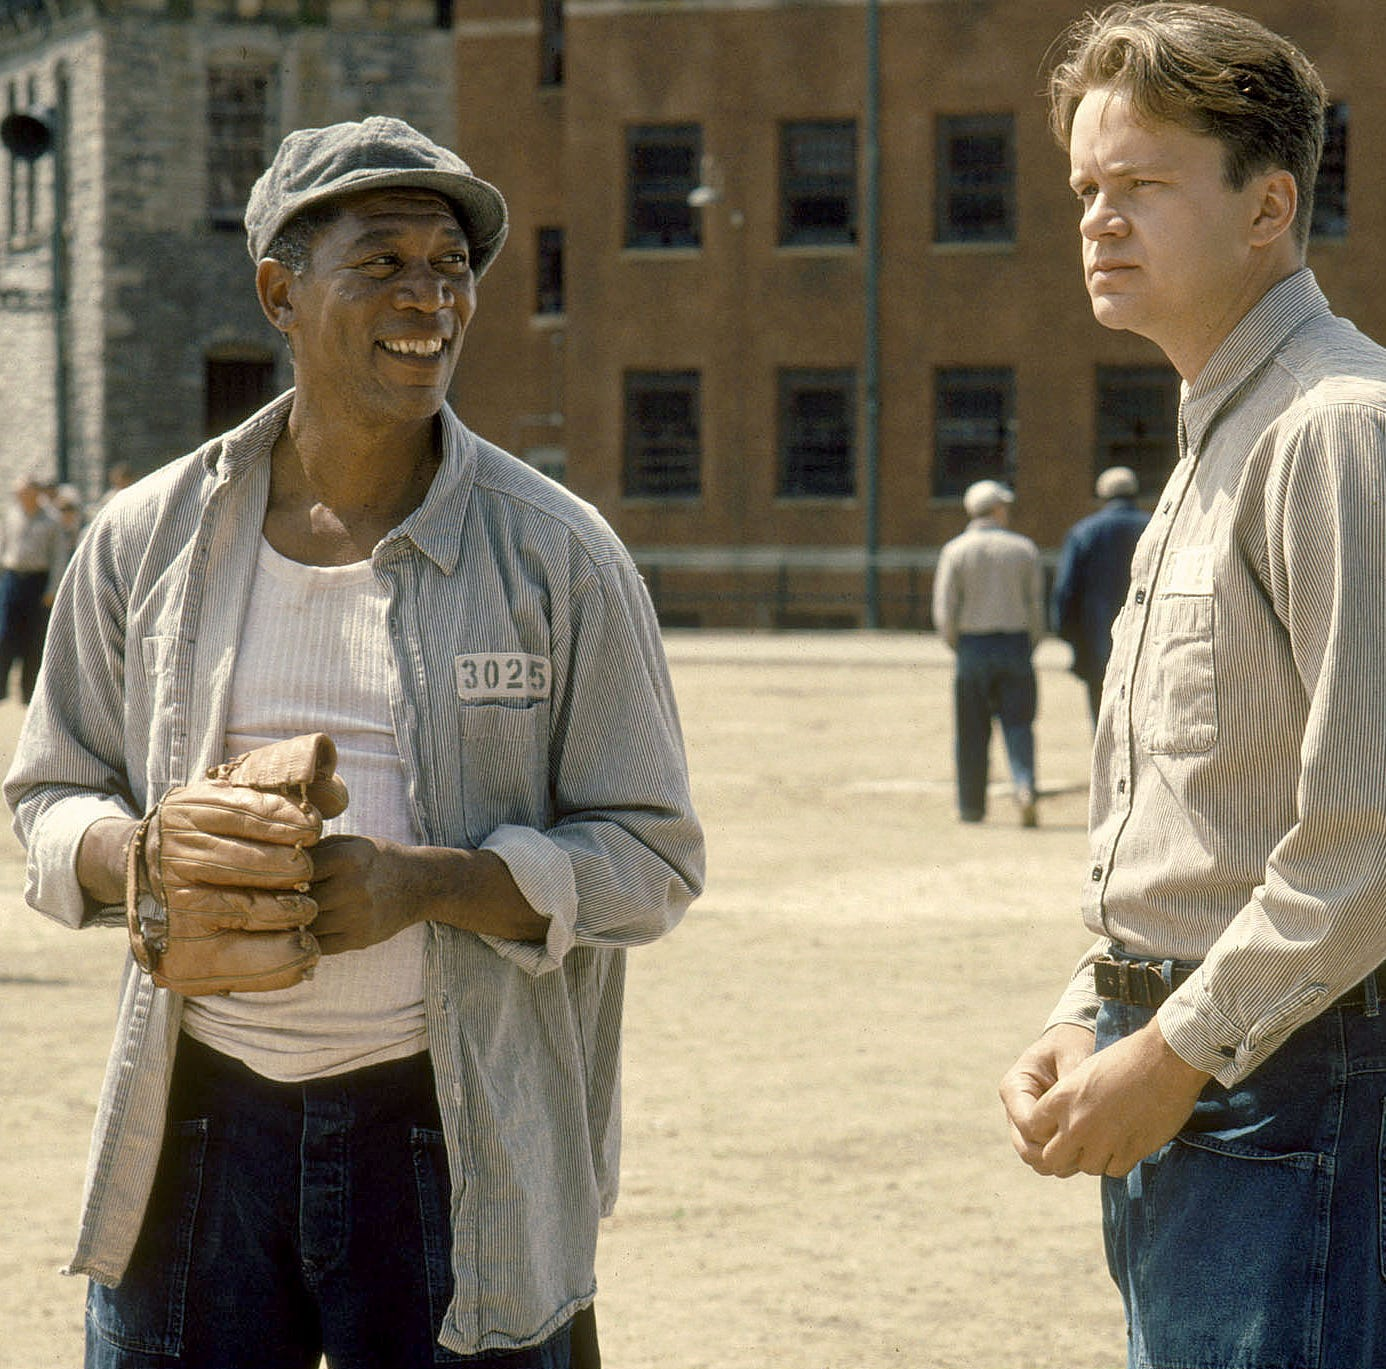 Shawshank Redemption cast to reunite in Mansfield for 25th anniversary